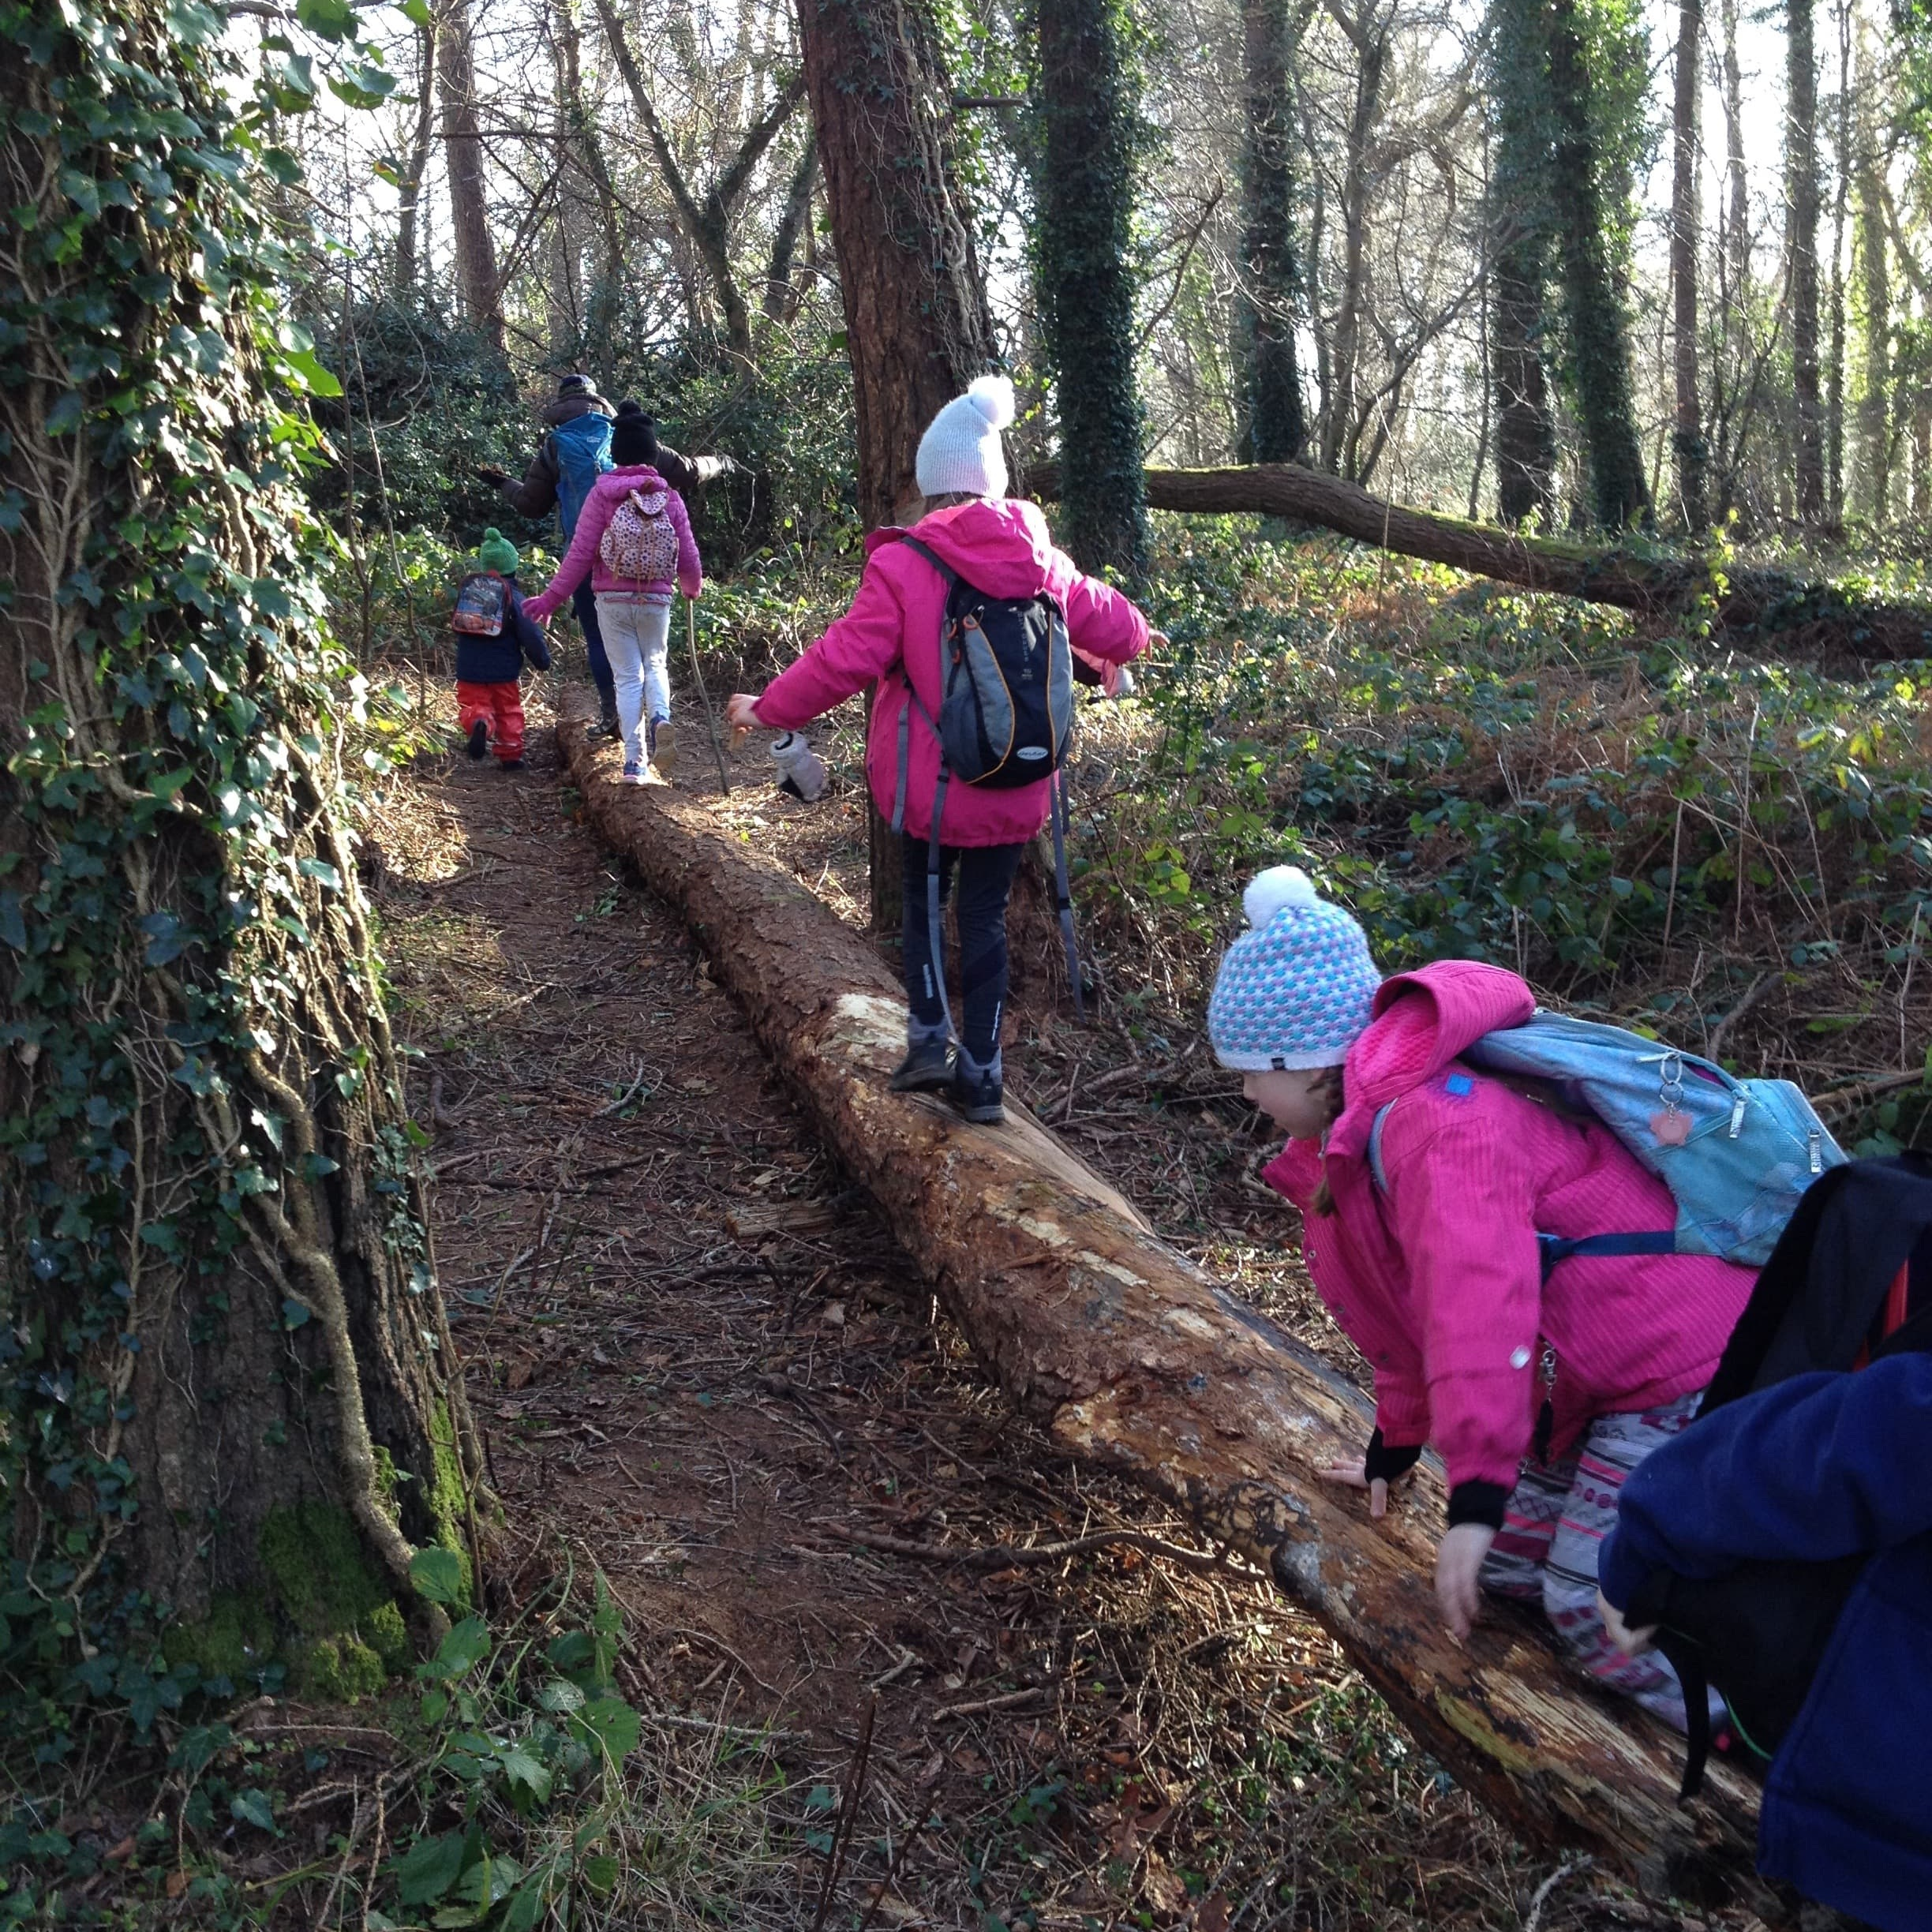 Explore The Forest - Discover and explore the forest on a different nature trail each day en-route to base camp learning about different trees, plants, animals and how to spot them.